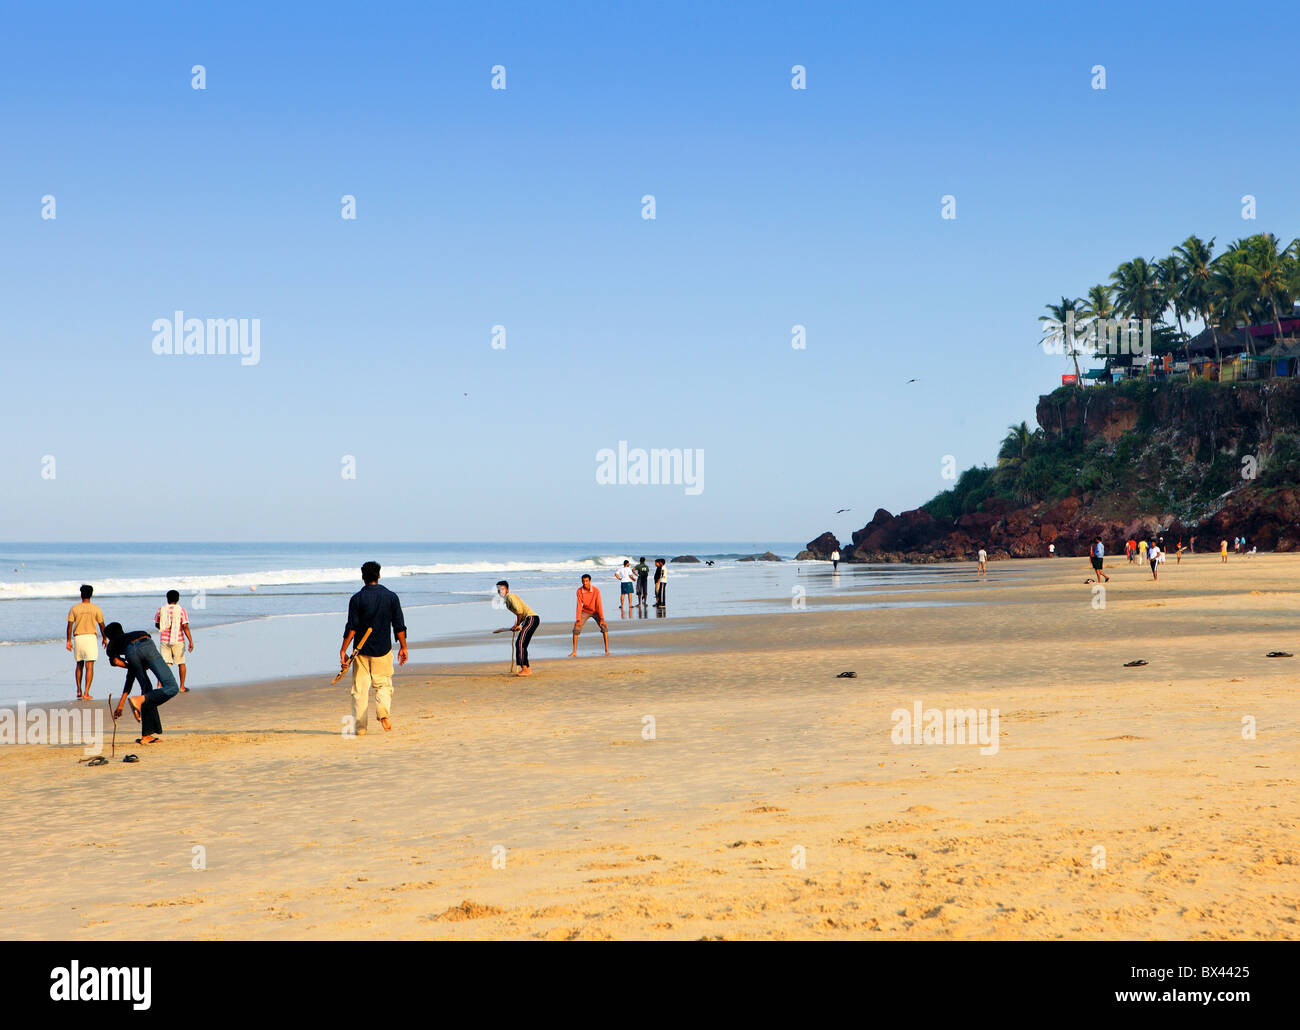 Young Indians develop their cricketing skills on the beach at Varkala, Kerala, on a Sunday morning. - Stock Image